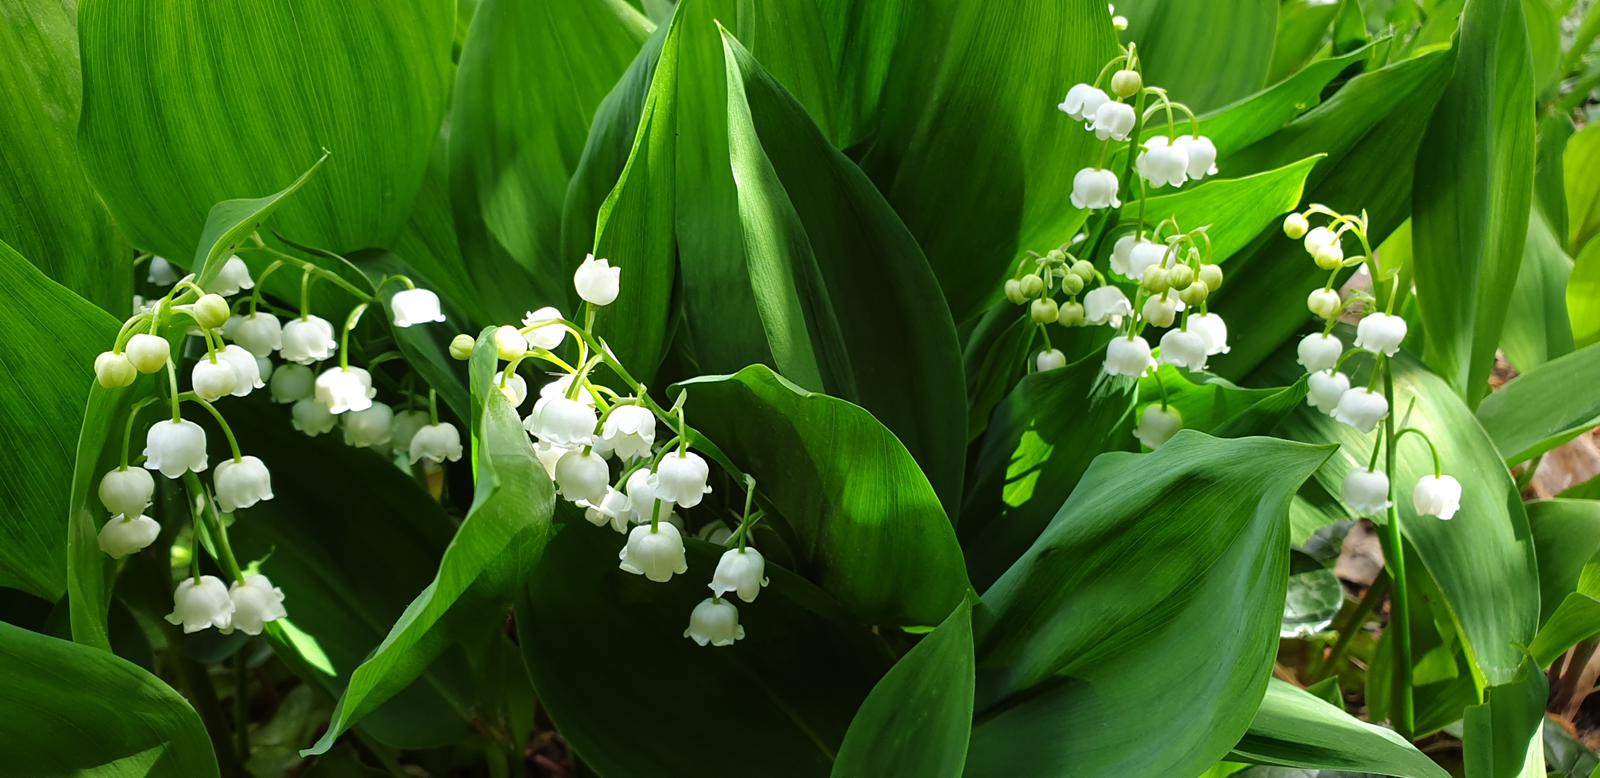 Lily of the valley in the Buckingham Palace gardens